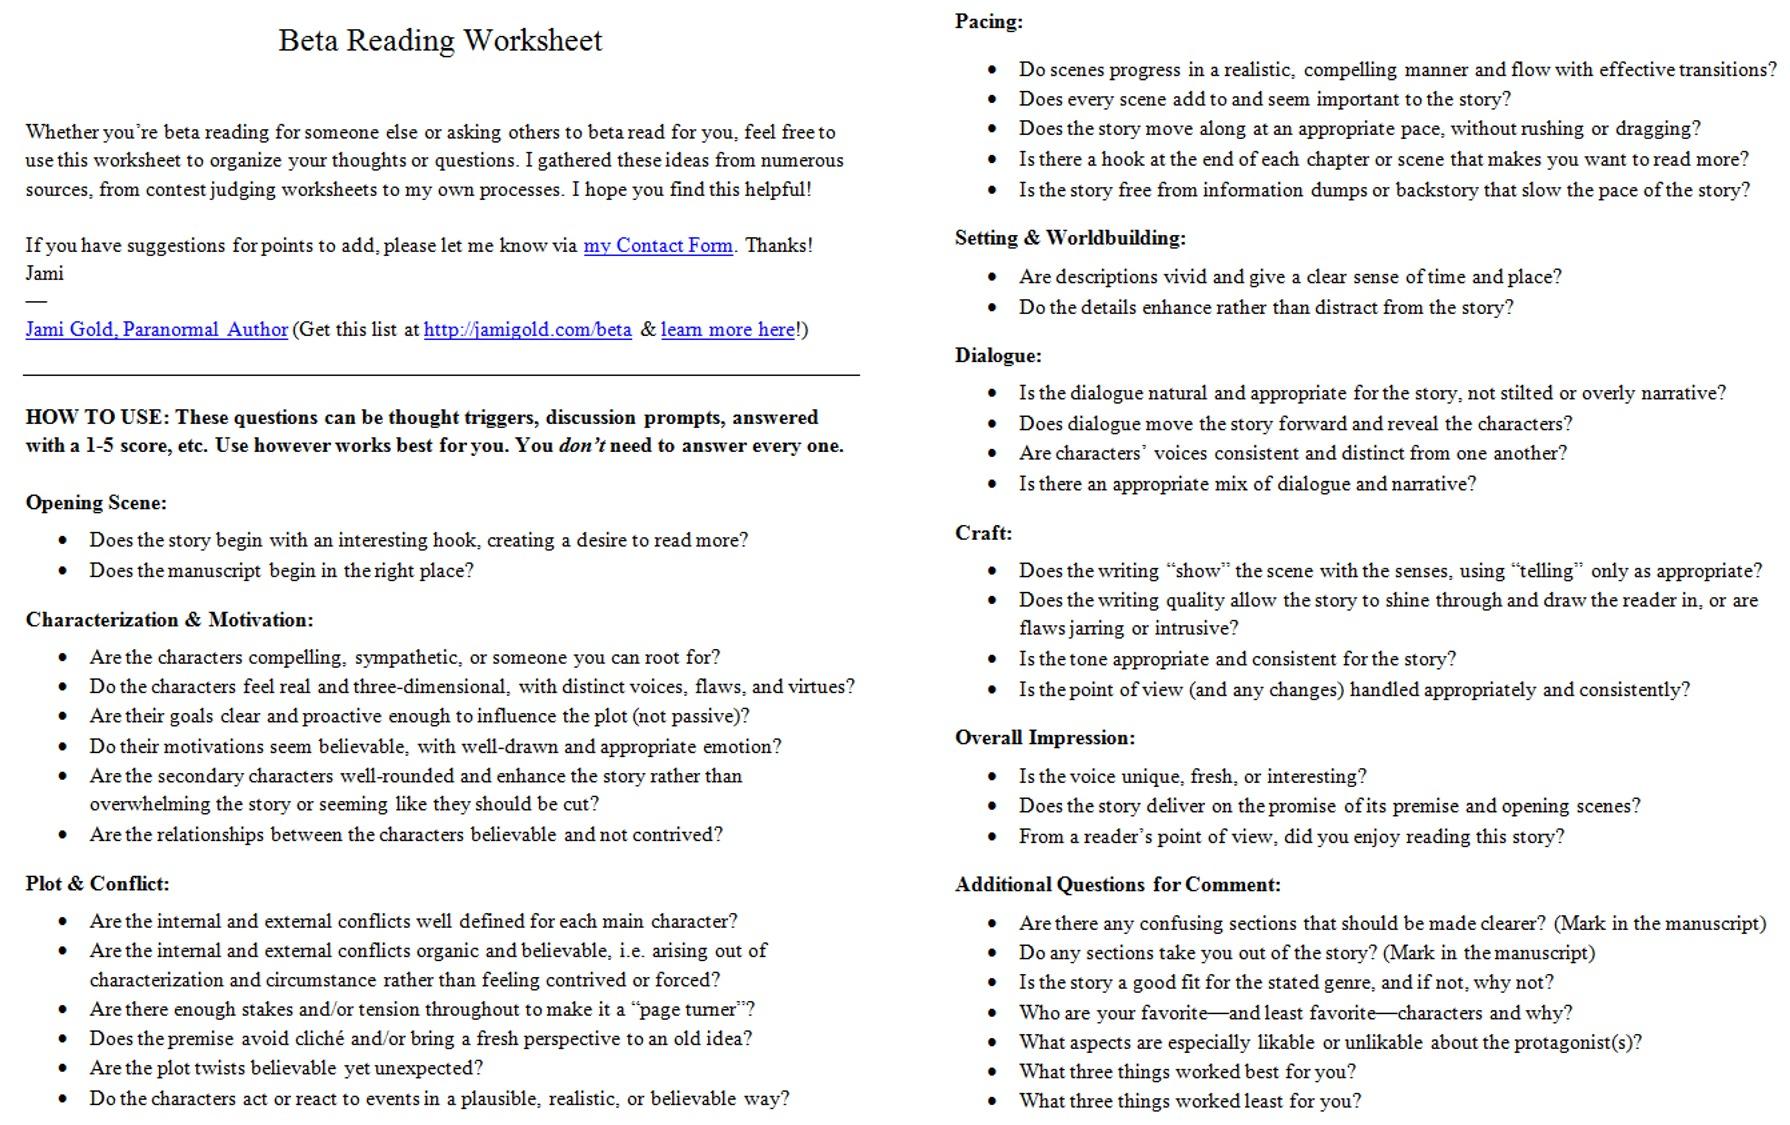 Aldiablosus  Fascinating Worksheets For Writers  Jami Gold Paranormal Author With Outstanding Screen Shot Of The Twopage Beta Reading Worksheet With Cute Year  Math Worksheets Also Math Worksheets Counting In Addition Healthy Food Worksheets For Kids And Work Skills Worksheets As Well As Practice Times Tables Worksheets Additionally Math Word Problems Grade  Worksheets From Jamigoldcom With Aldiablosus  Outstanding Worksheets For Writers  Jami Gold Paranormal Author With Cute Screen Shot Of The Twopage Beta Reading Worksheet And Fascinating Year  Math Worksheets Also Math Worksheets Counting In Addition Healthy Food Worksheets For Kids From Jamigoldcom